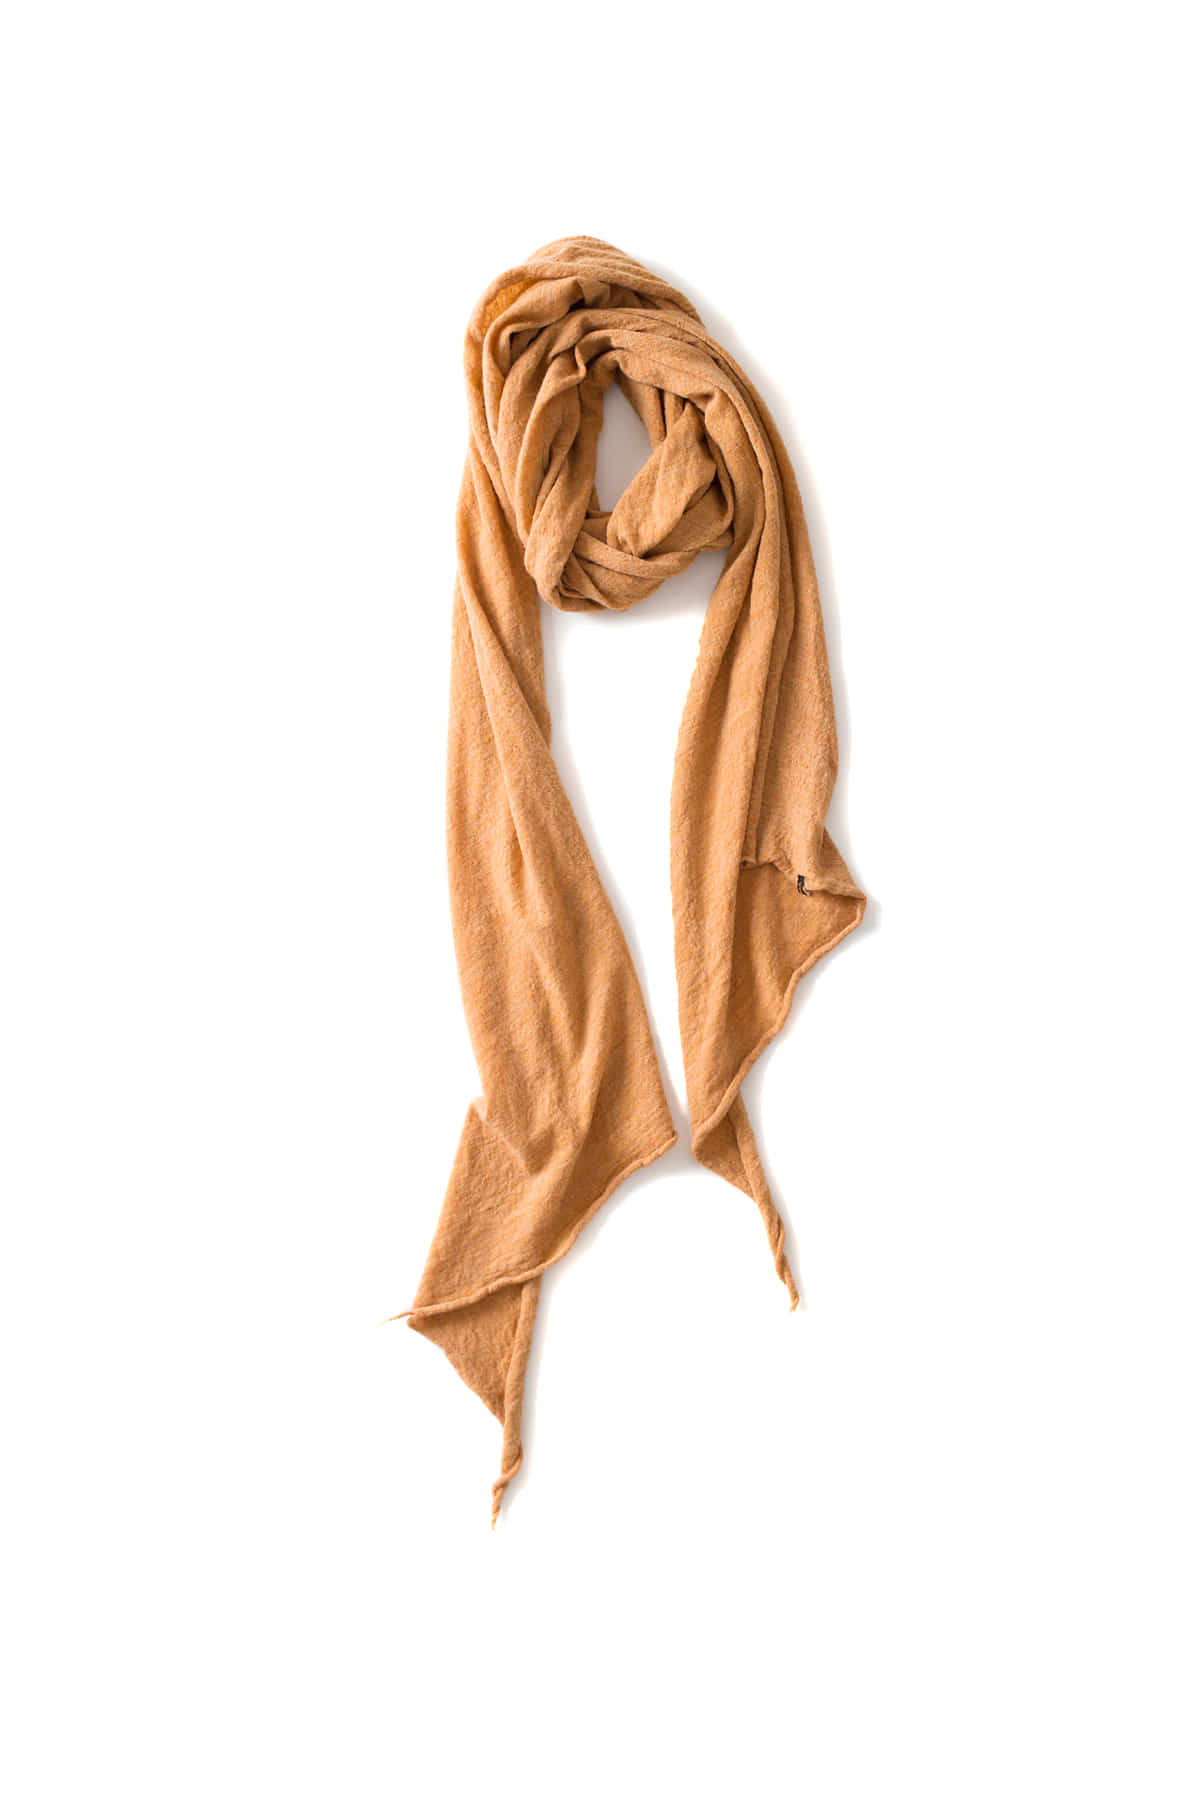 RYU : Washable Wool Gauze Stole (Mustard)